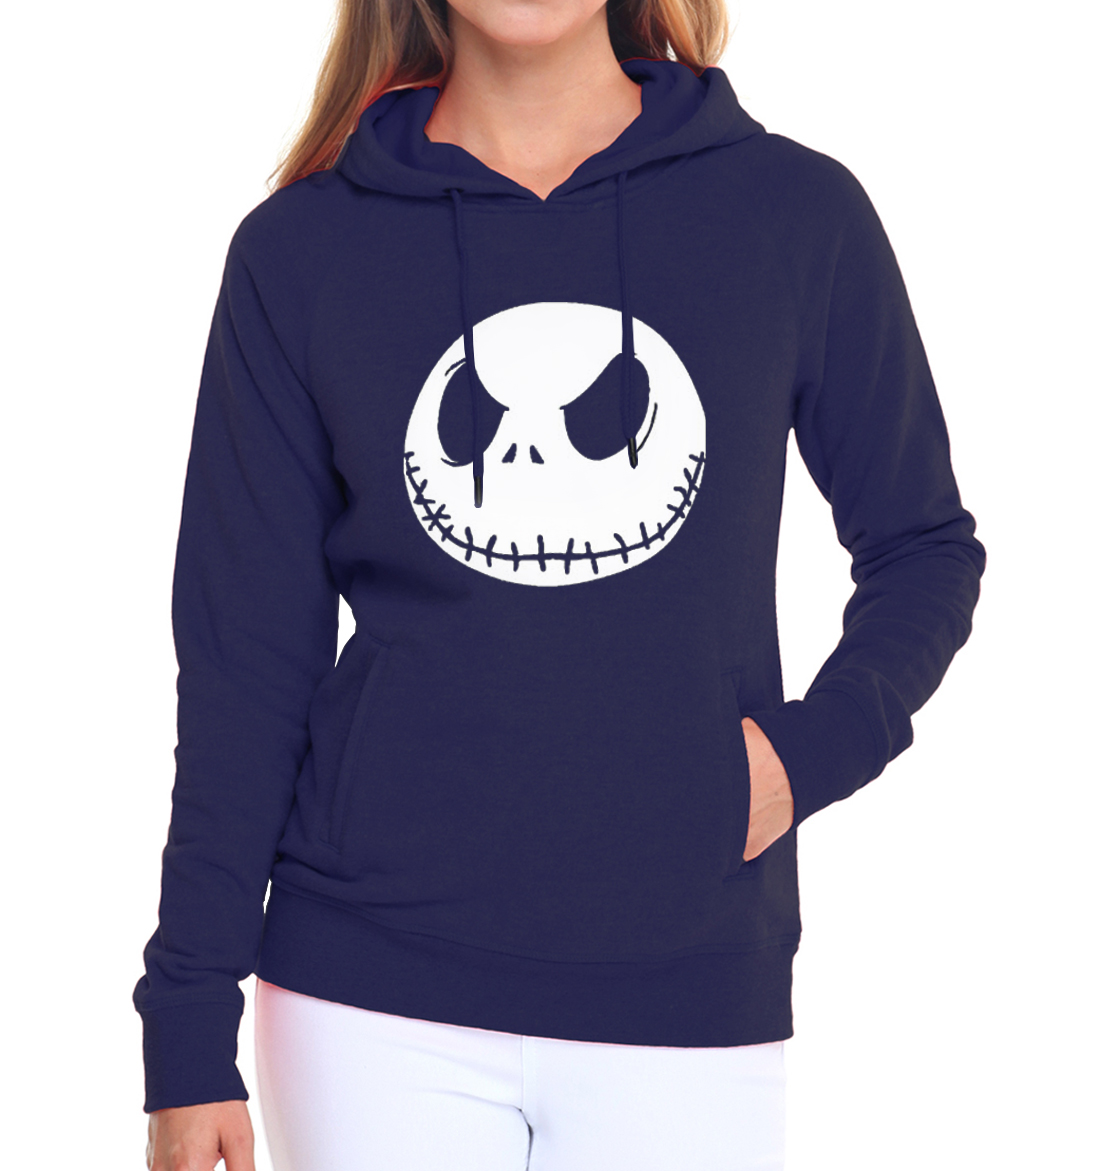 female streetwear kpop brand tracksuits Jack Skellington women casual sweatshirts 2019 autumn hip-hop long sleeve pink hoodies